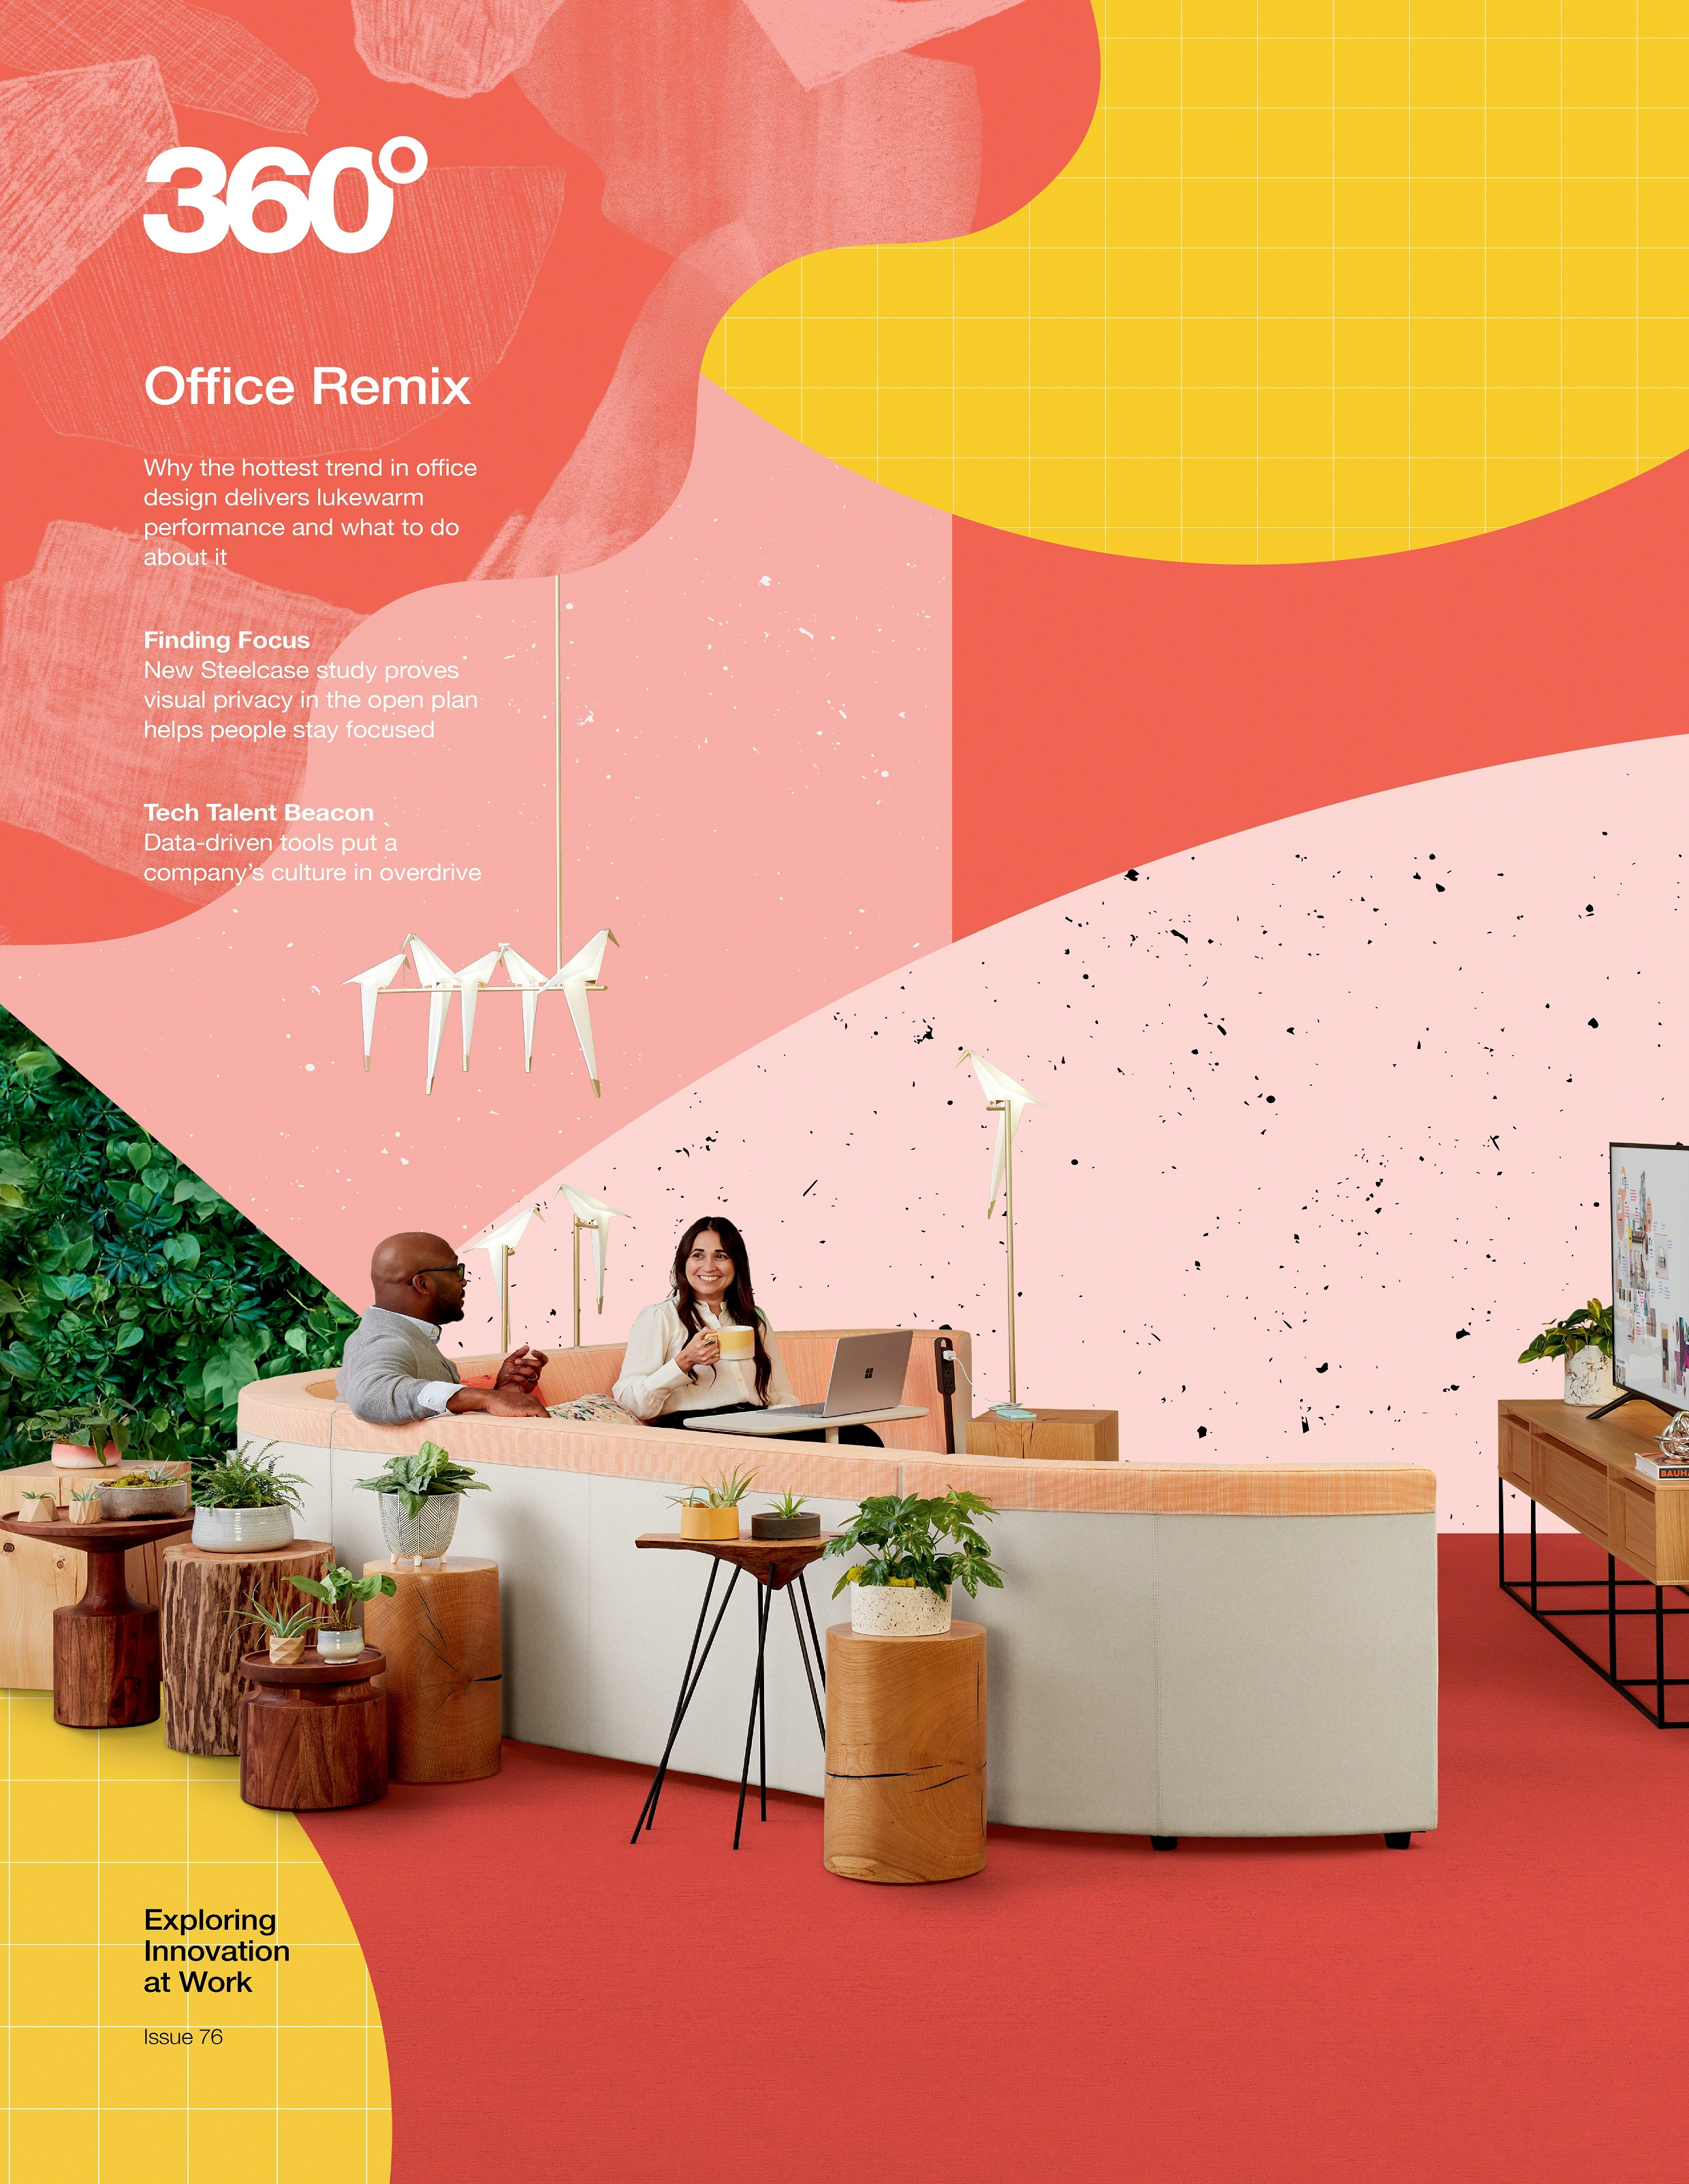 Steelcase-360-Office-Remix